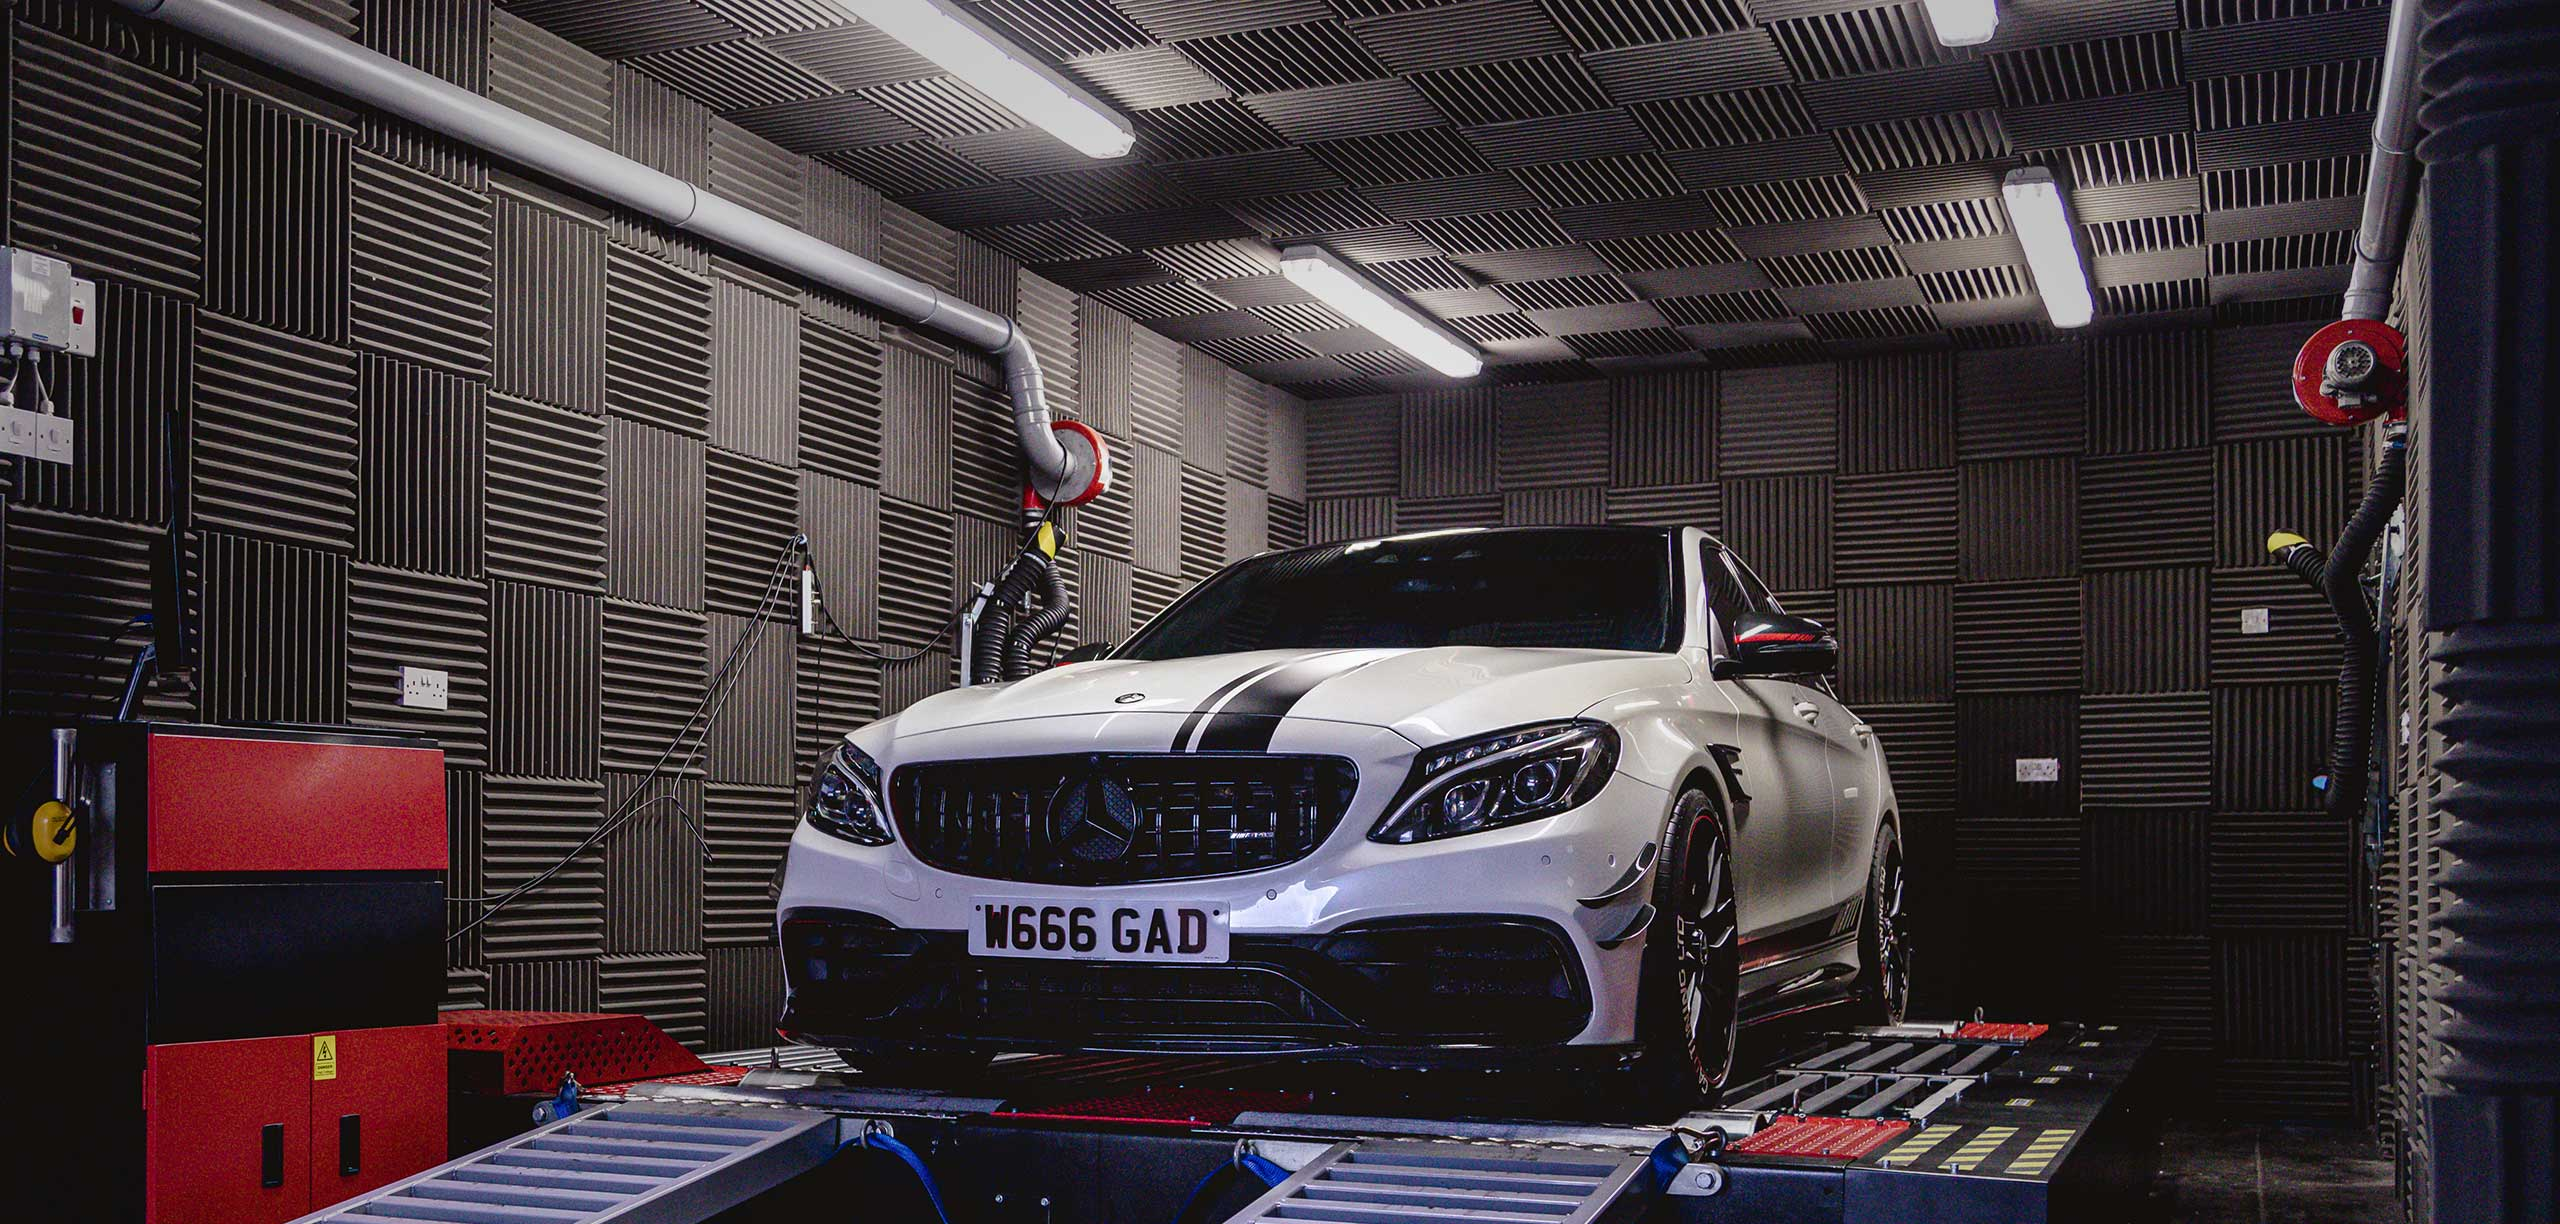 ECU Remapping Essex, London Engine Remapping Services - Mercedes